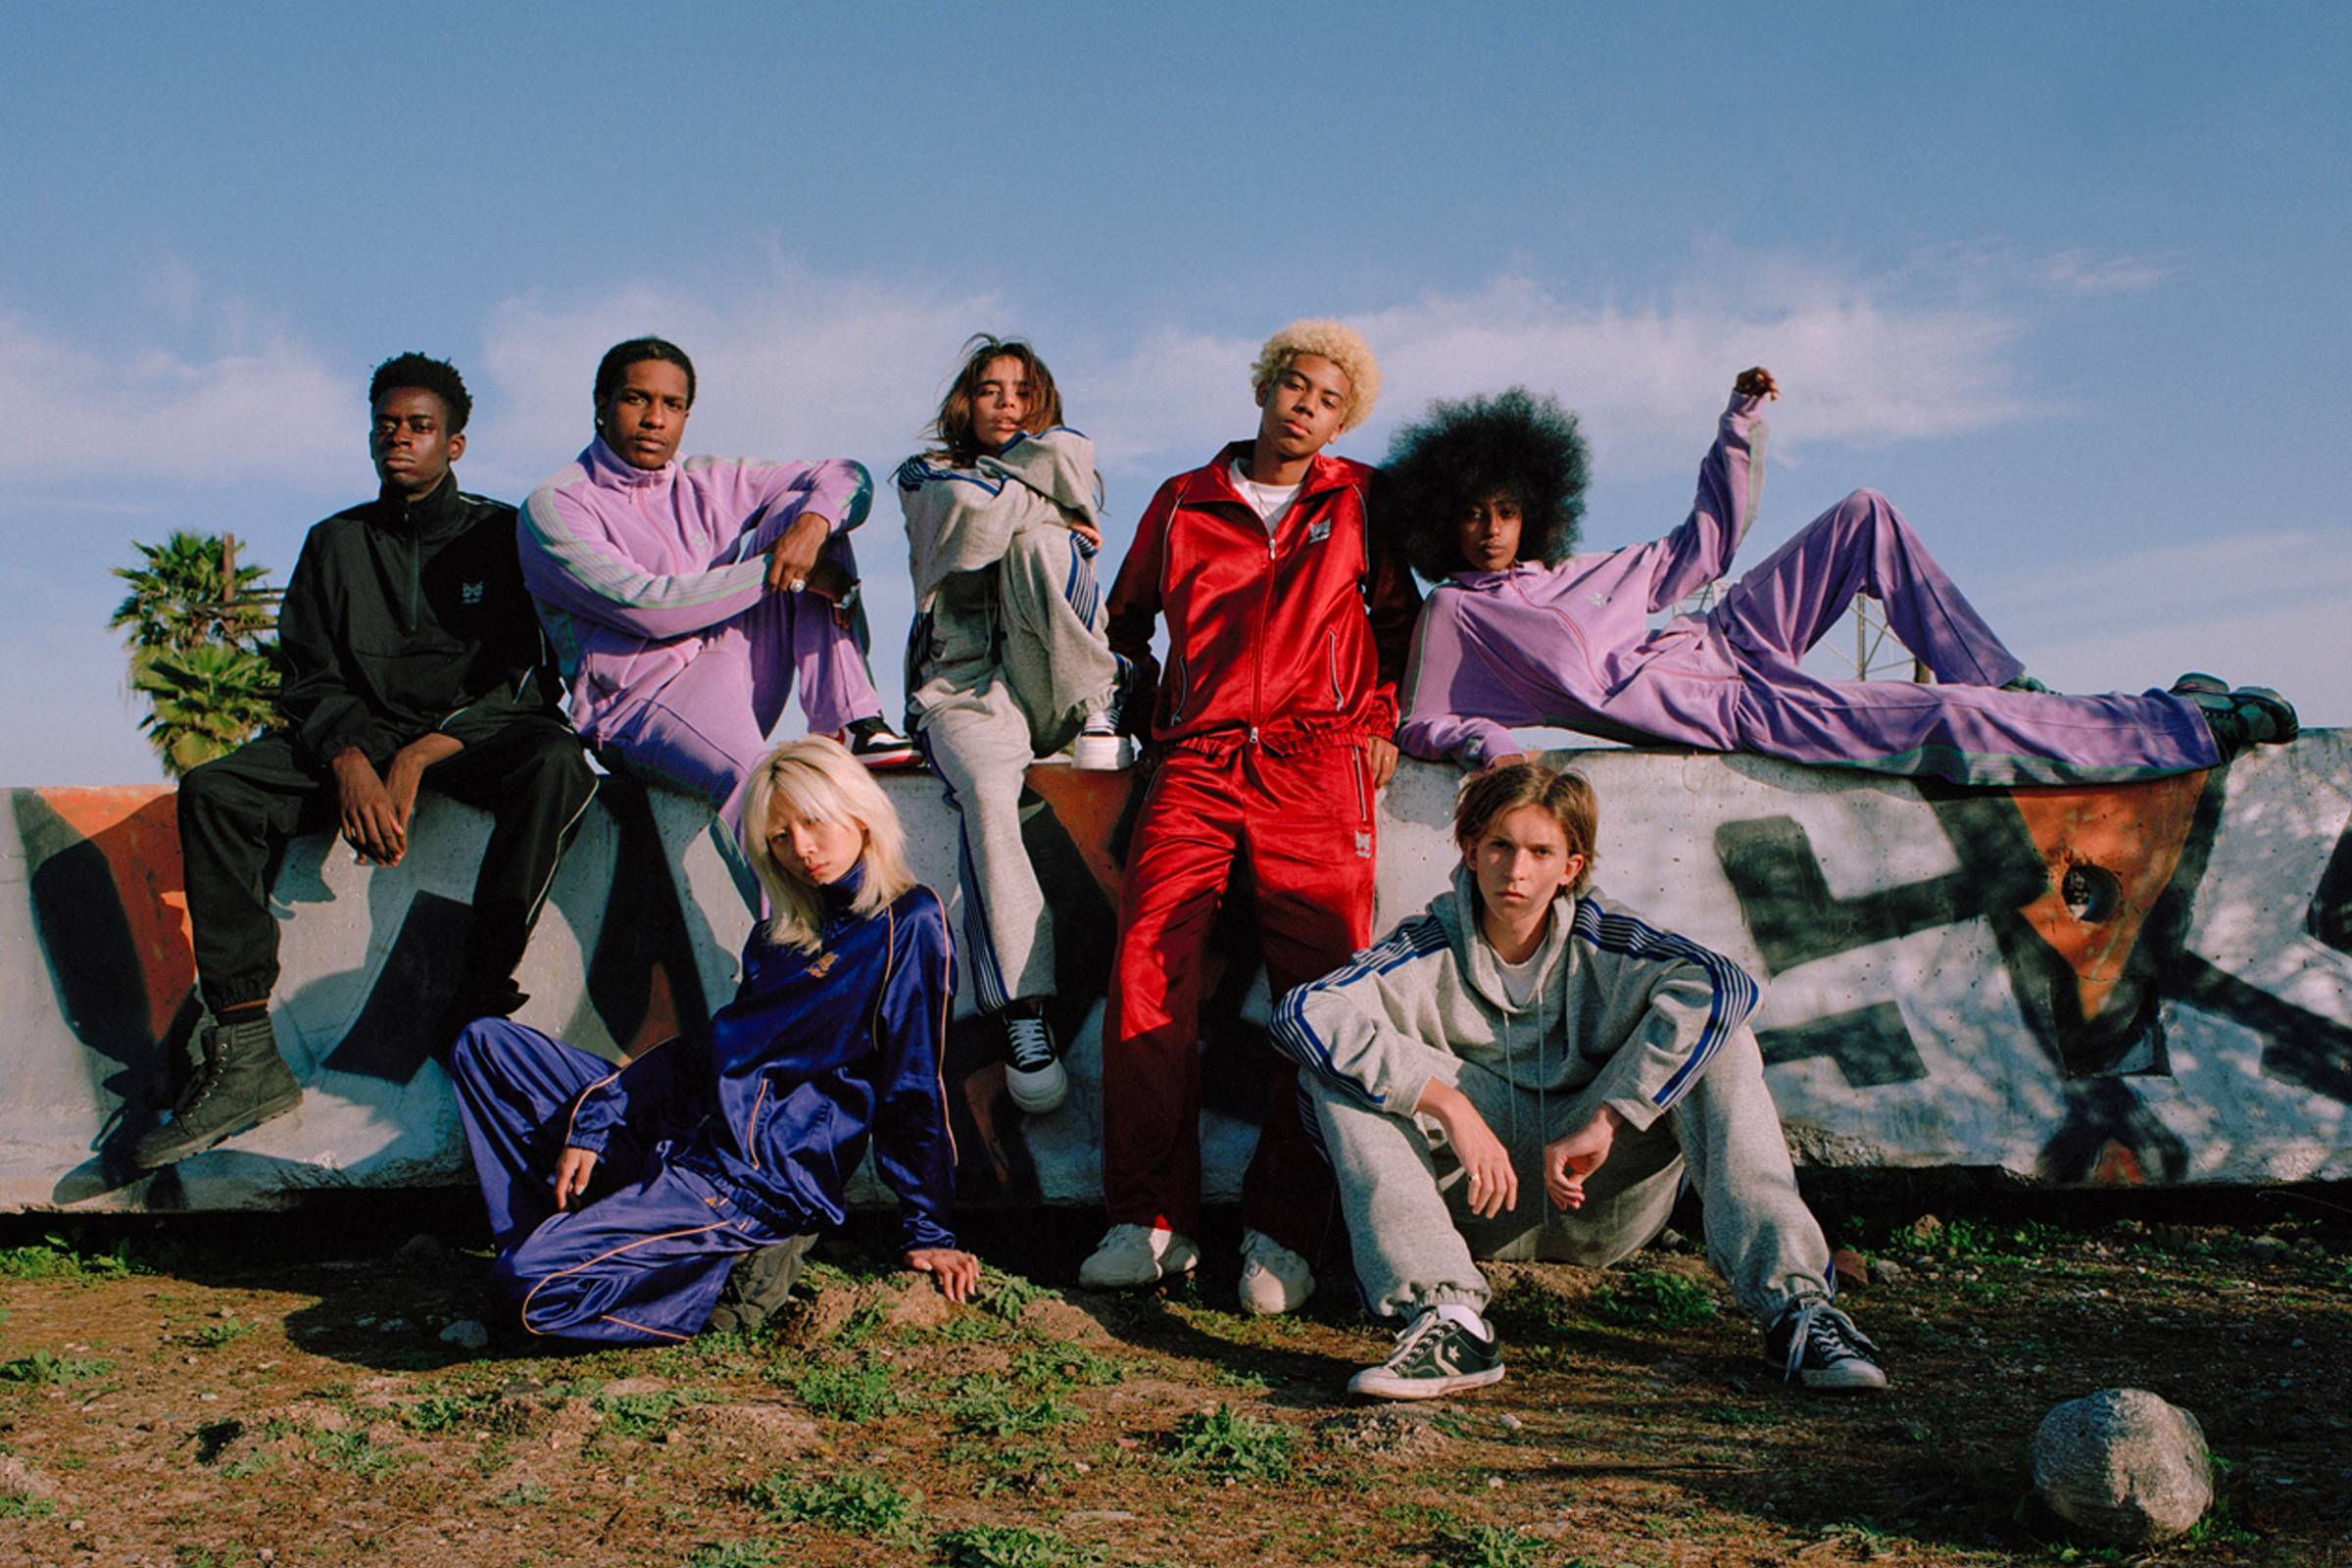 A promotional photo from the Spring/Summer 2019 AWGE x Needles collaboration